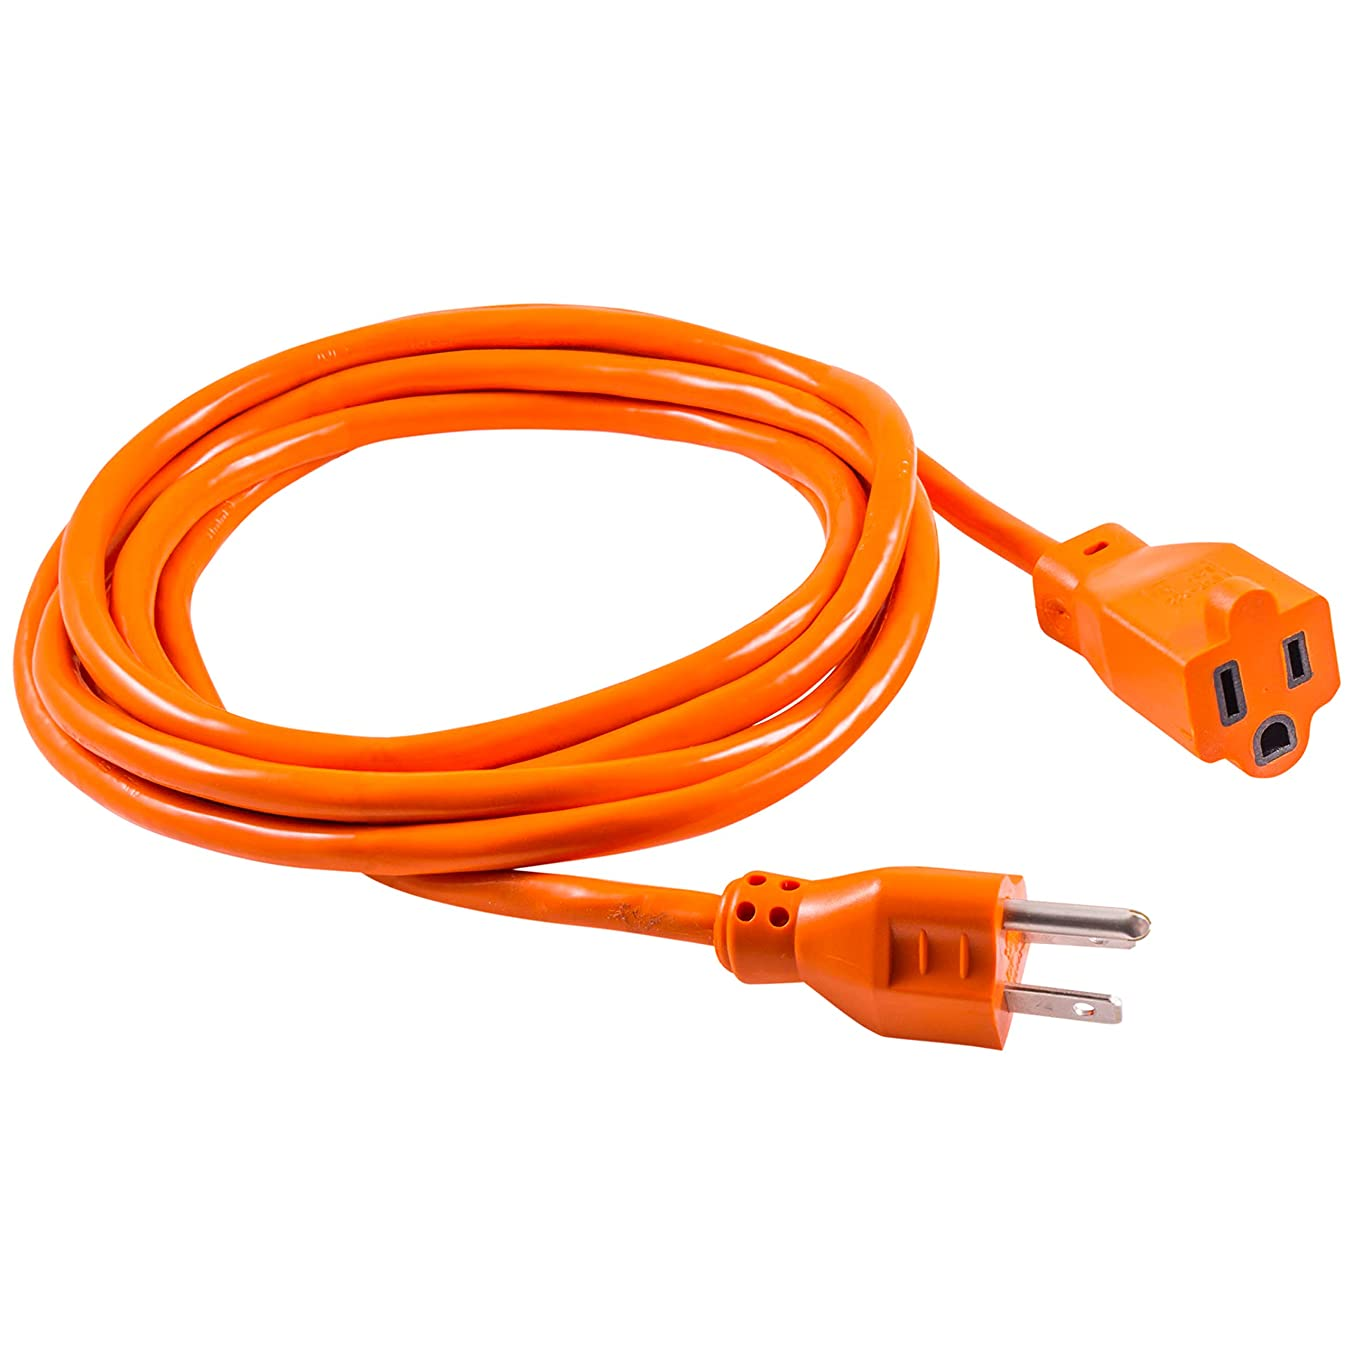 GE 9ft Extension Cord, Heavy Duty, 16AWG, Indoor / Outdoor Use, Extra Long Power Cord, UL Listed, Orange, 51927